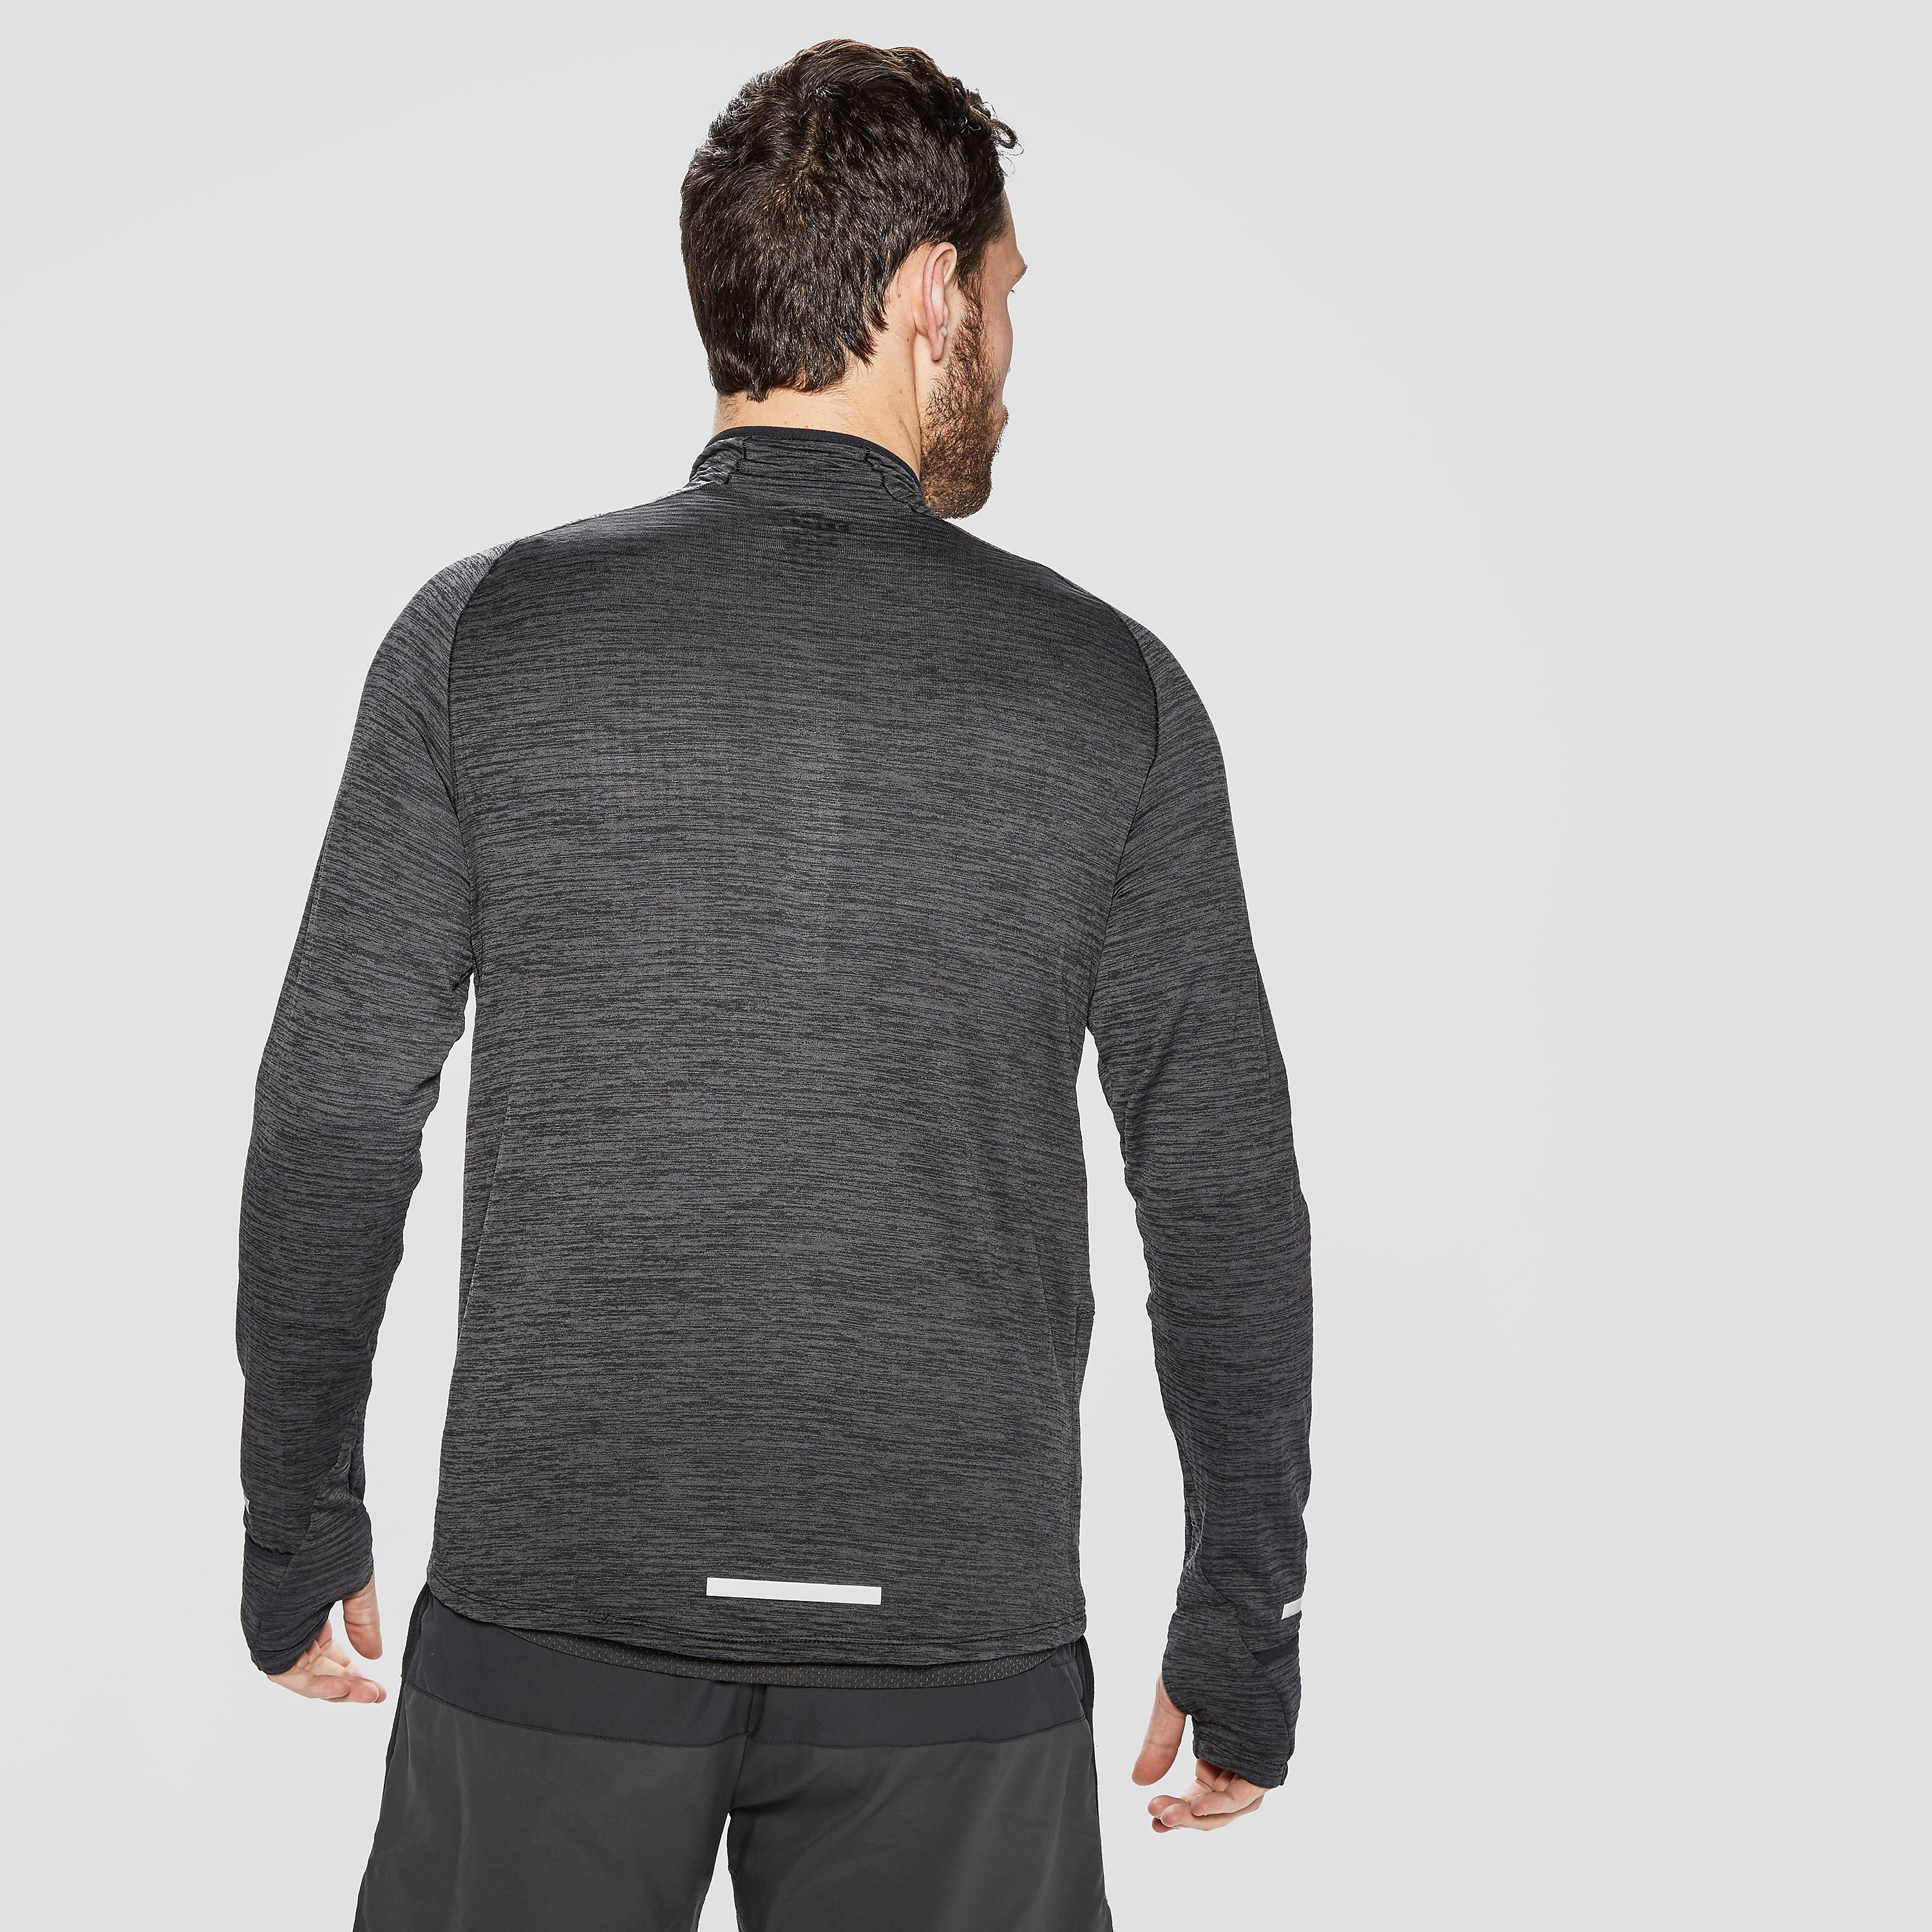 Nike Element Sphere Half-Zip Men's Running Shirt